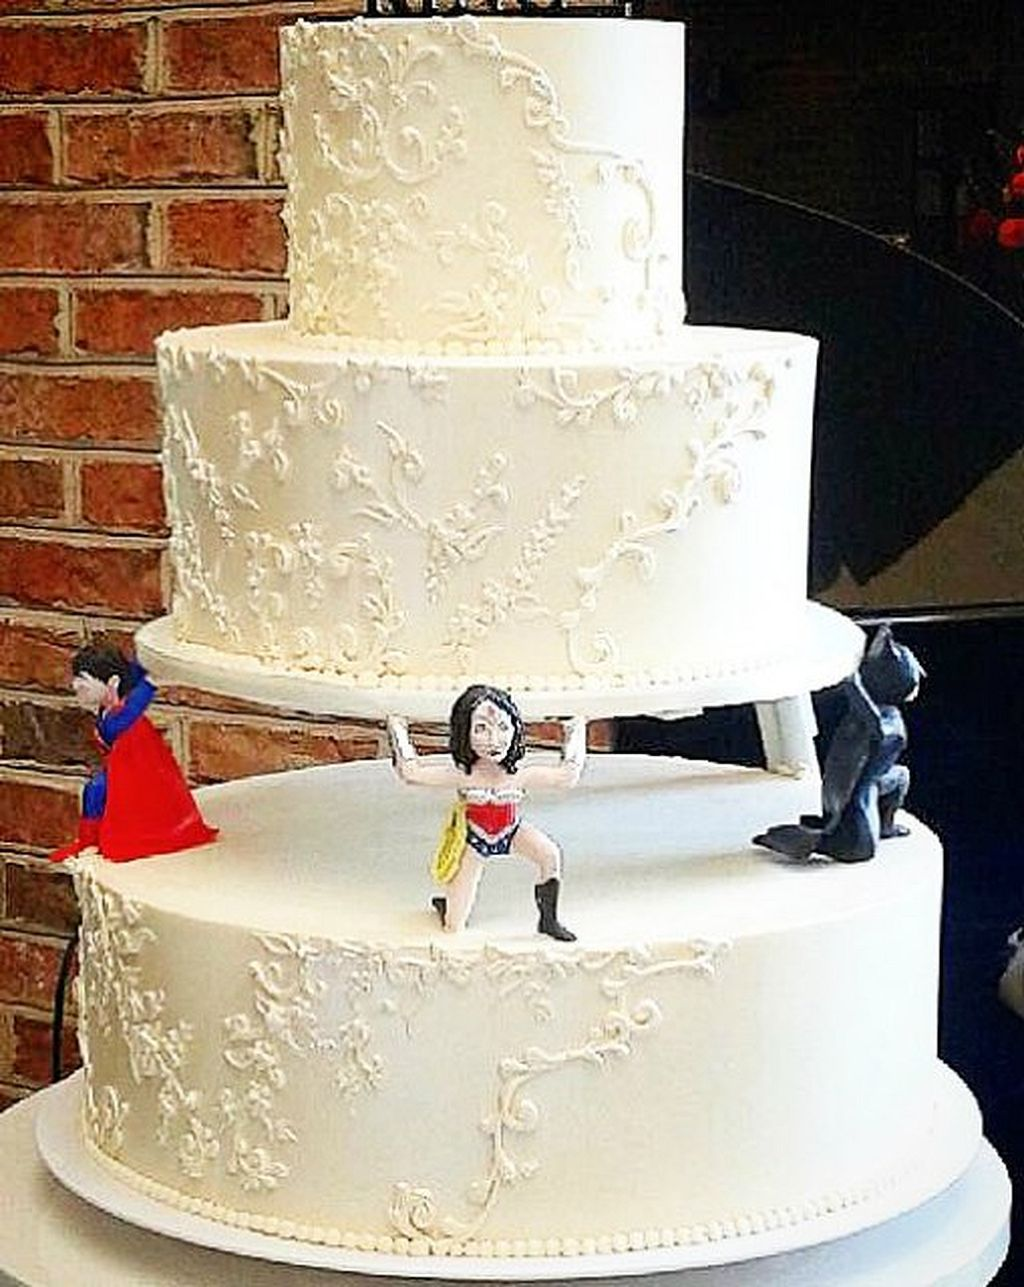 222 Superhero Themed Wedding Ideas | Pinterest | Themed weddings ...